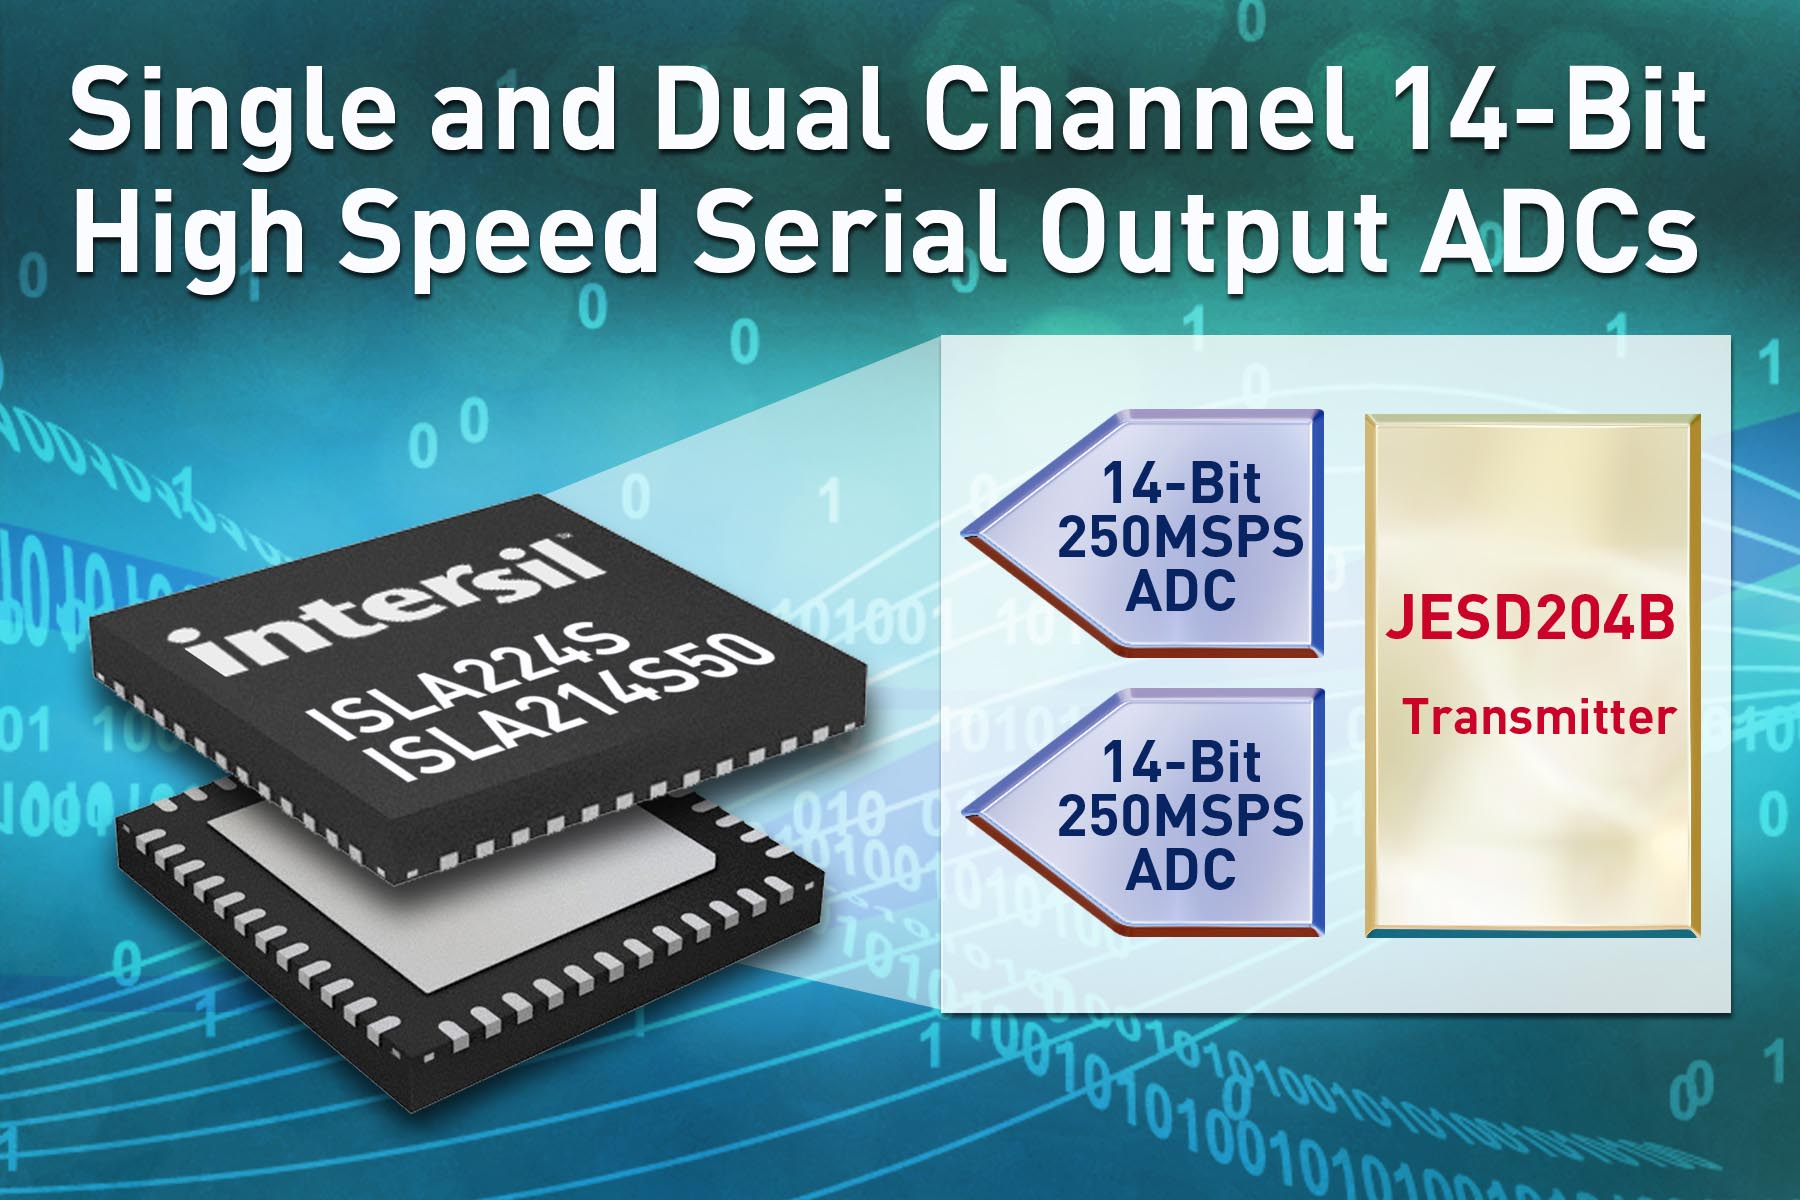 Power Systems Design Psd Information To Your Designs 5v Buck Converter Circuit Project Using Ltc3112 Dc Compact 250 500msps Serial Output Adcs Simplify Board Layout